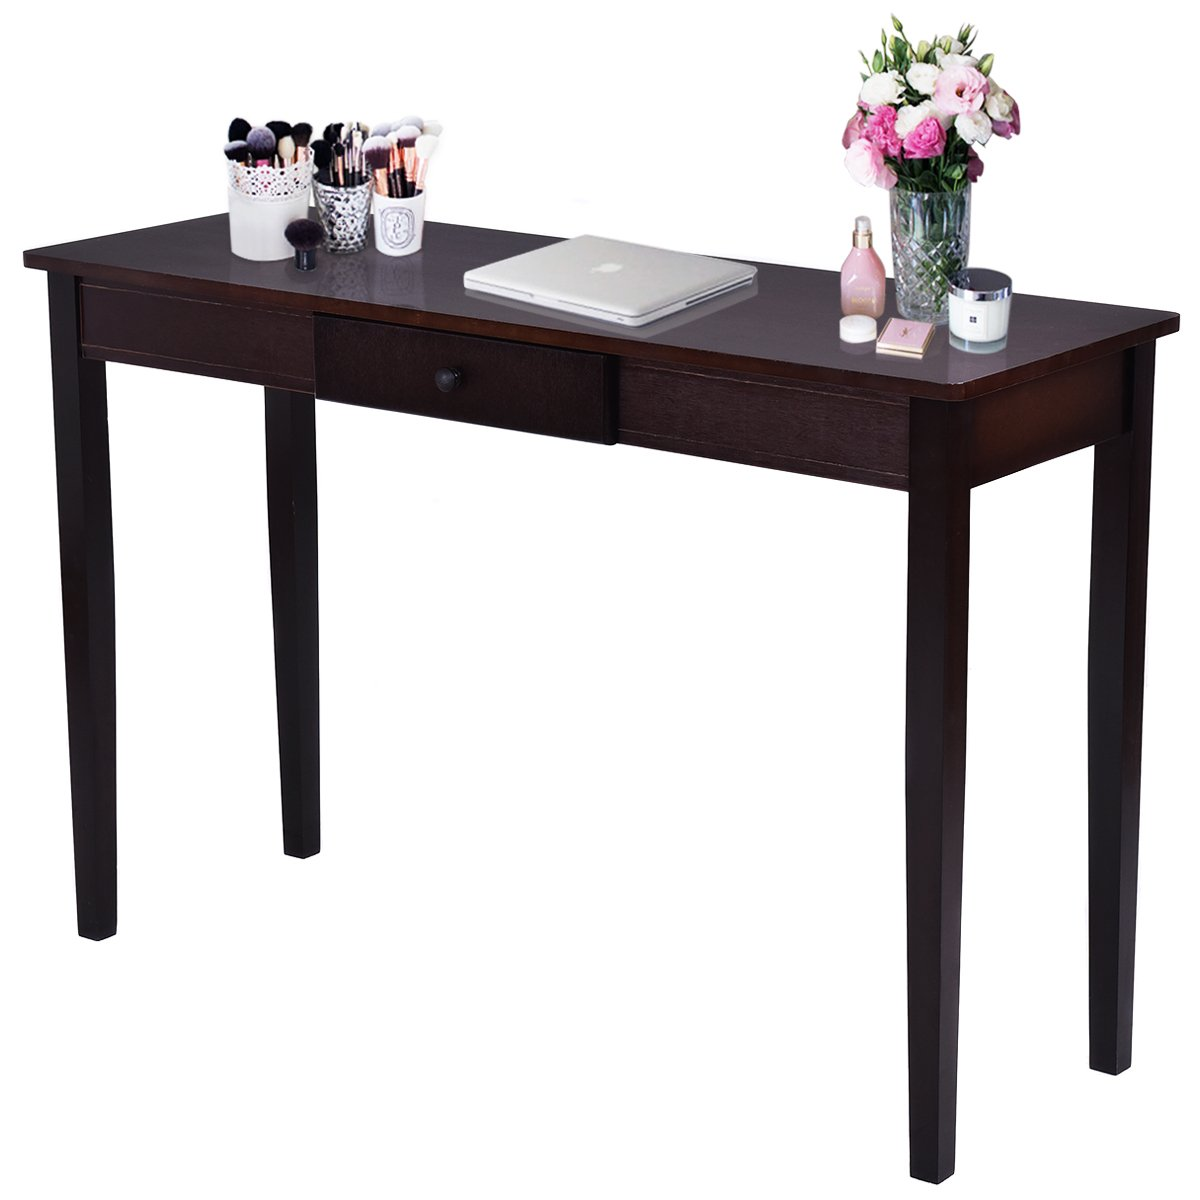 Giantex Wood Console Table For Entryway Hallway Modern Hall Side Tall Table with One Drawer Living Room Furniture, Dark Walnut